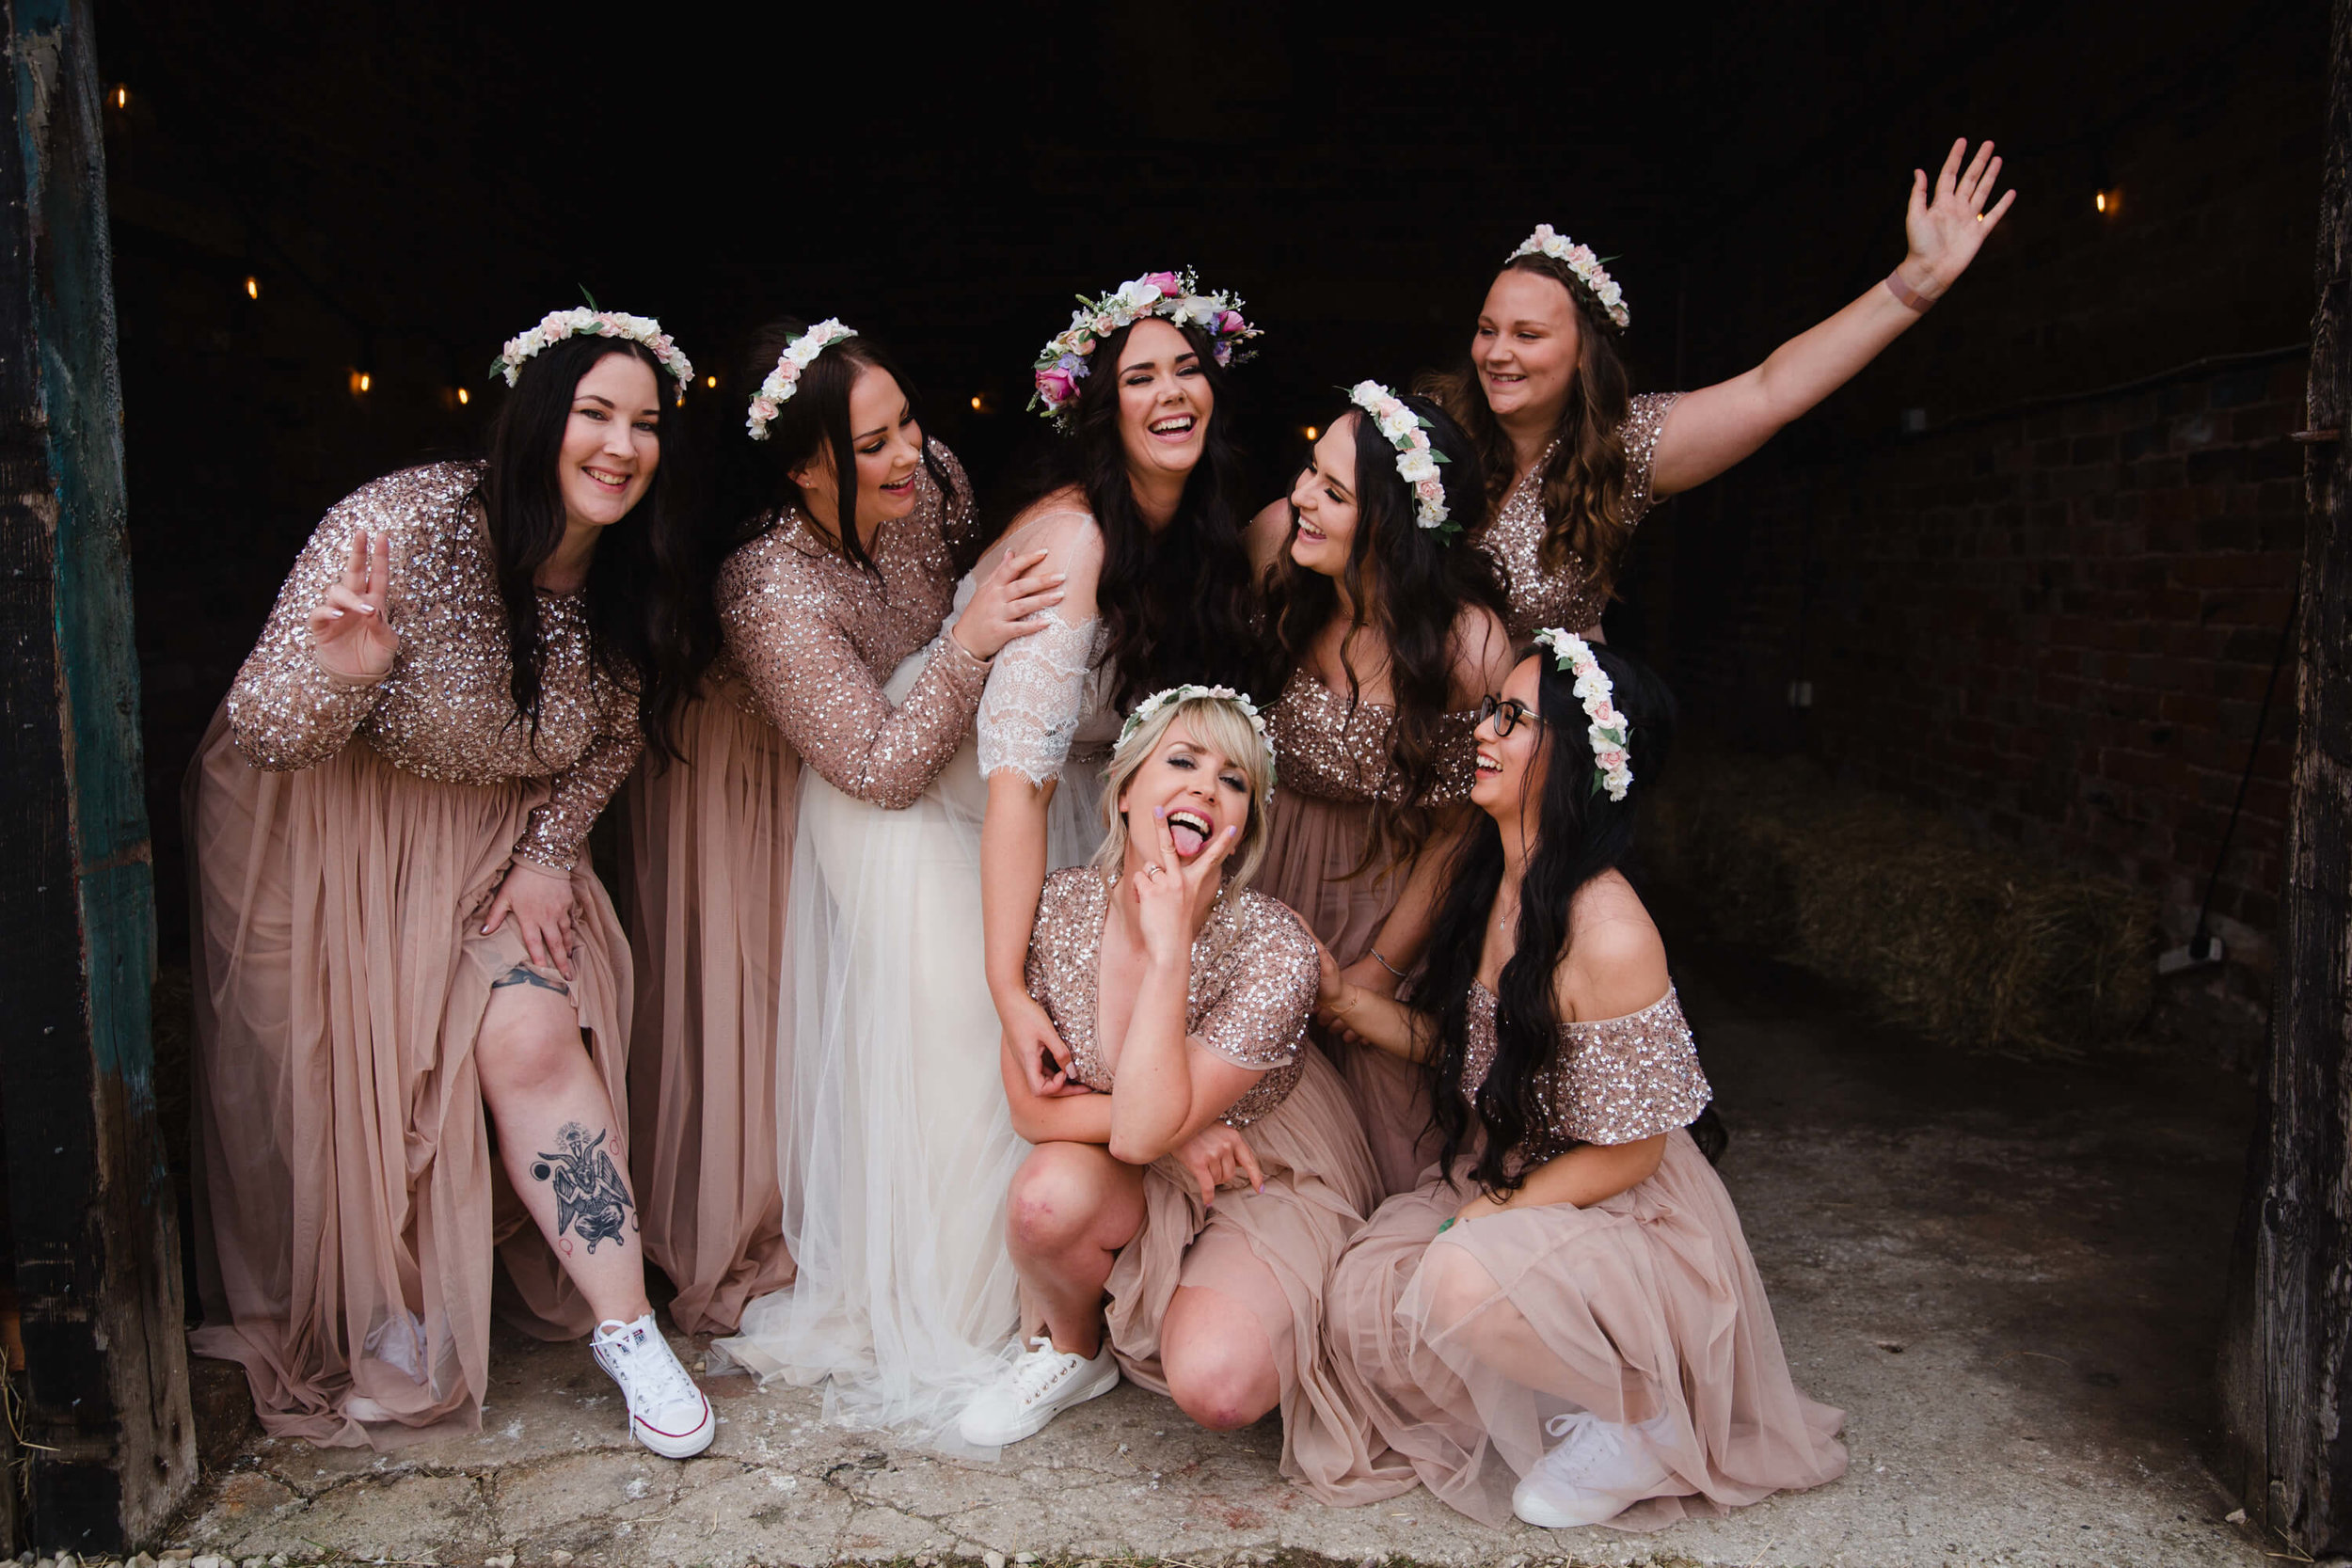 bridesmaids pose together for camera at entrance to farm homestead